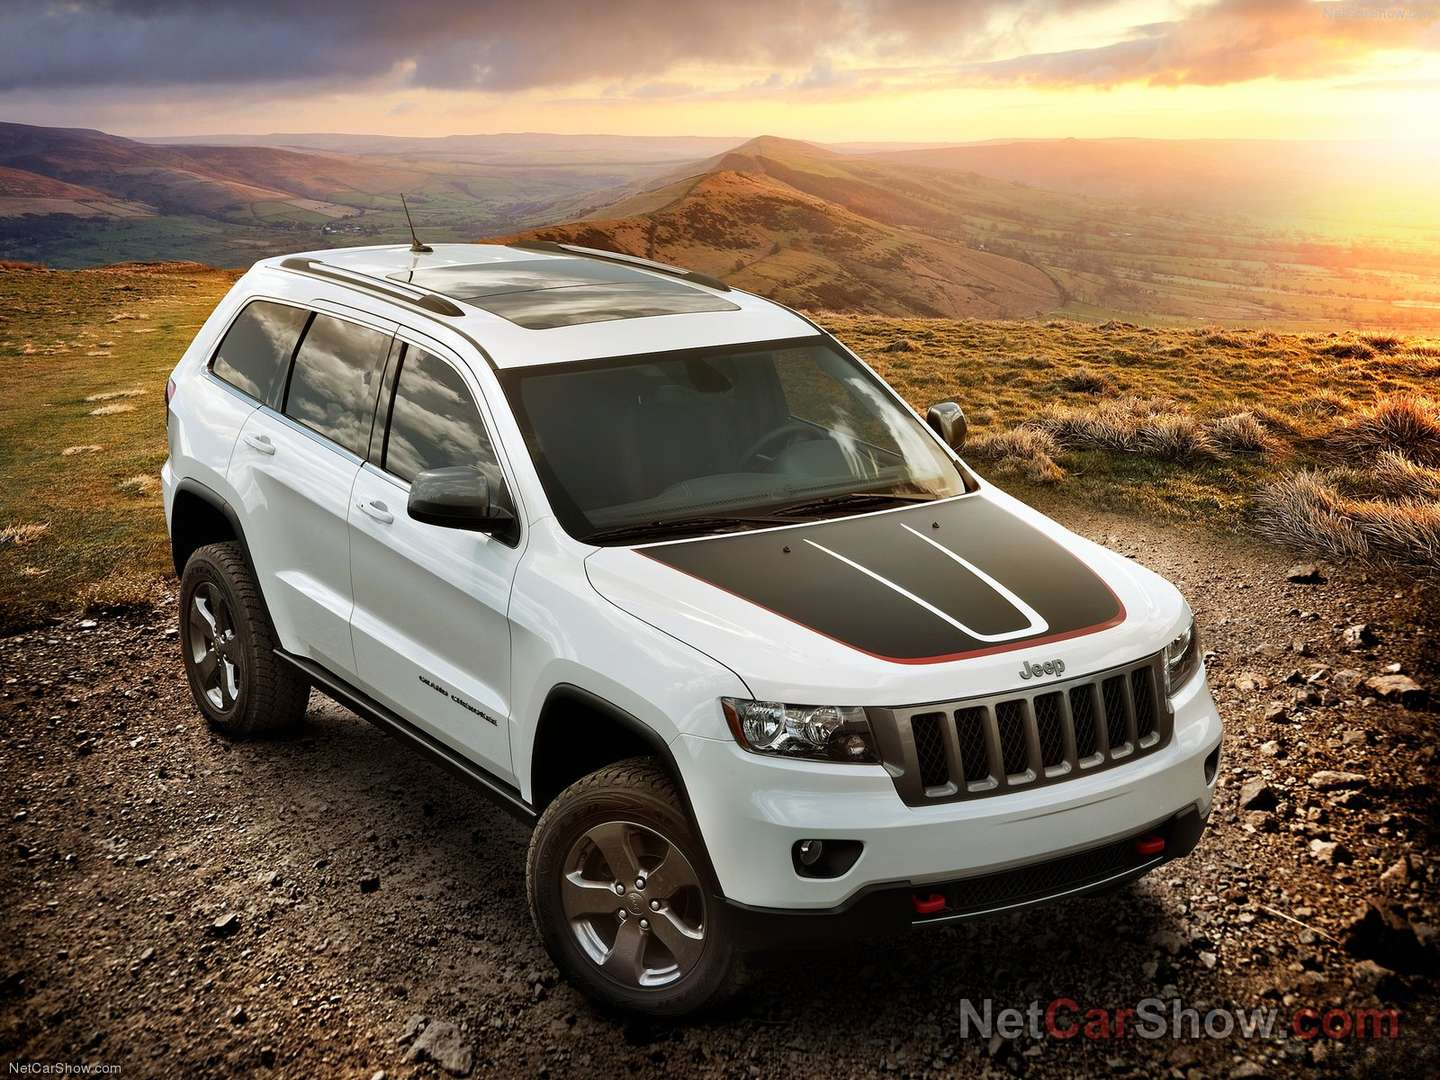 Jeep Trailhawk #7916238